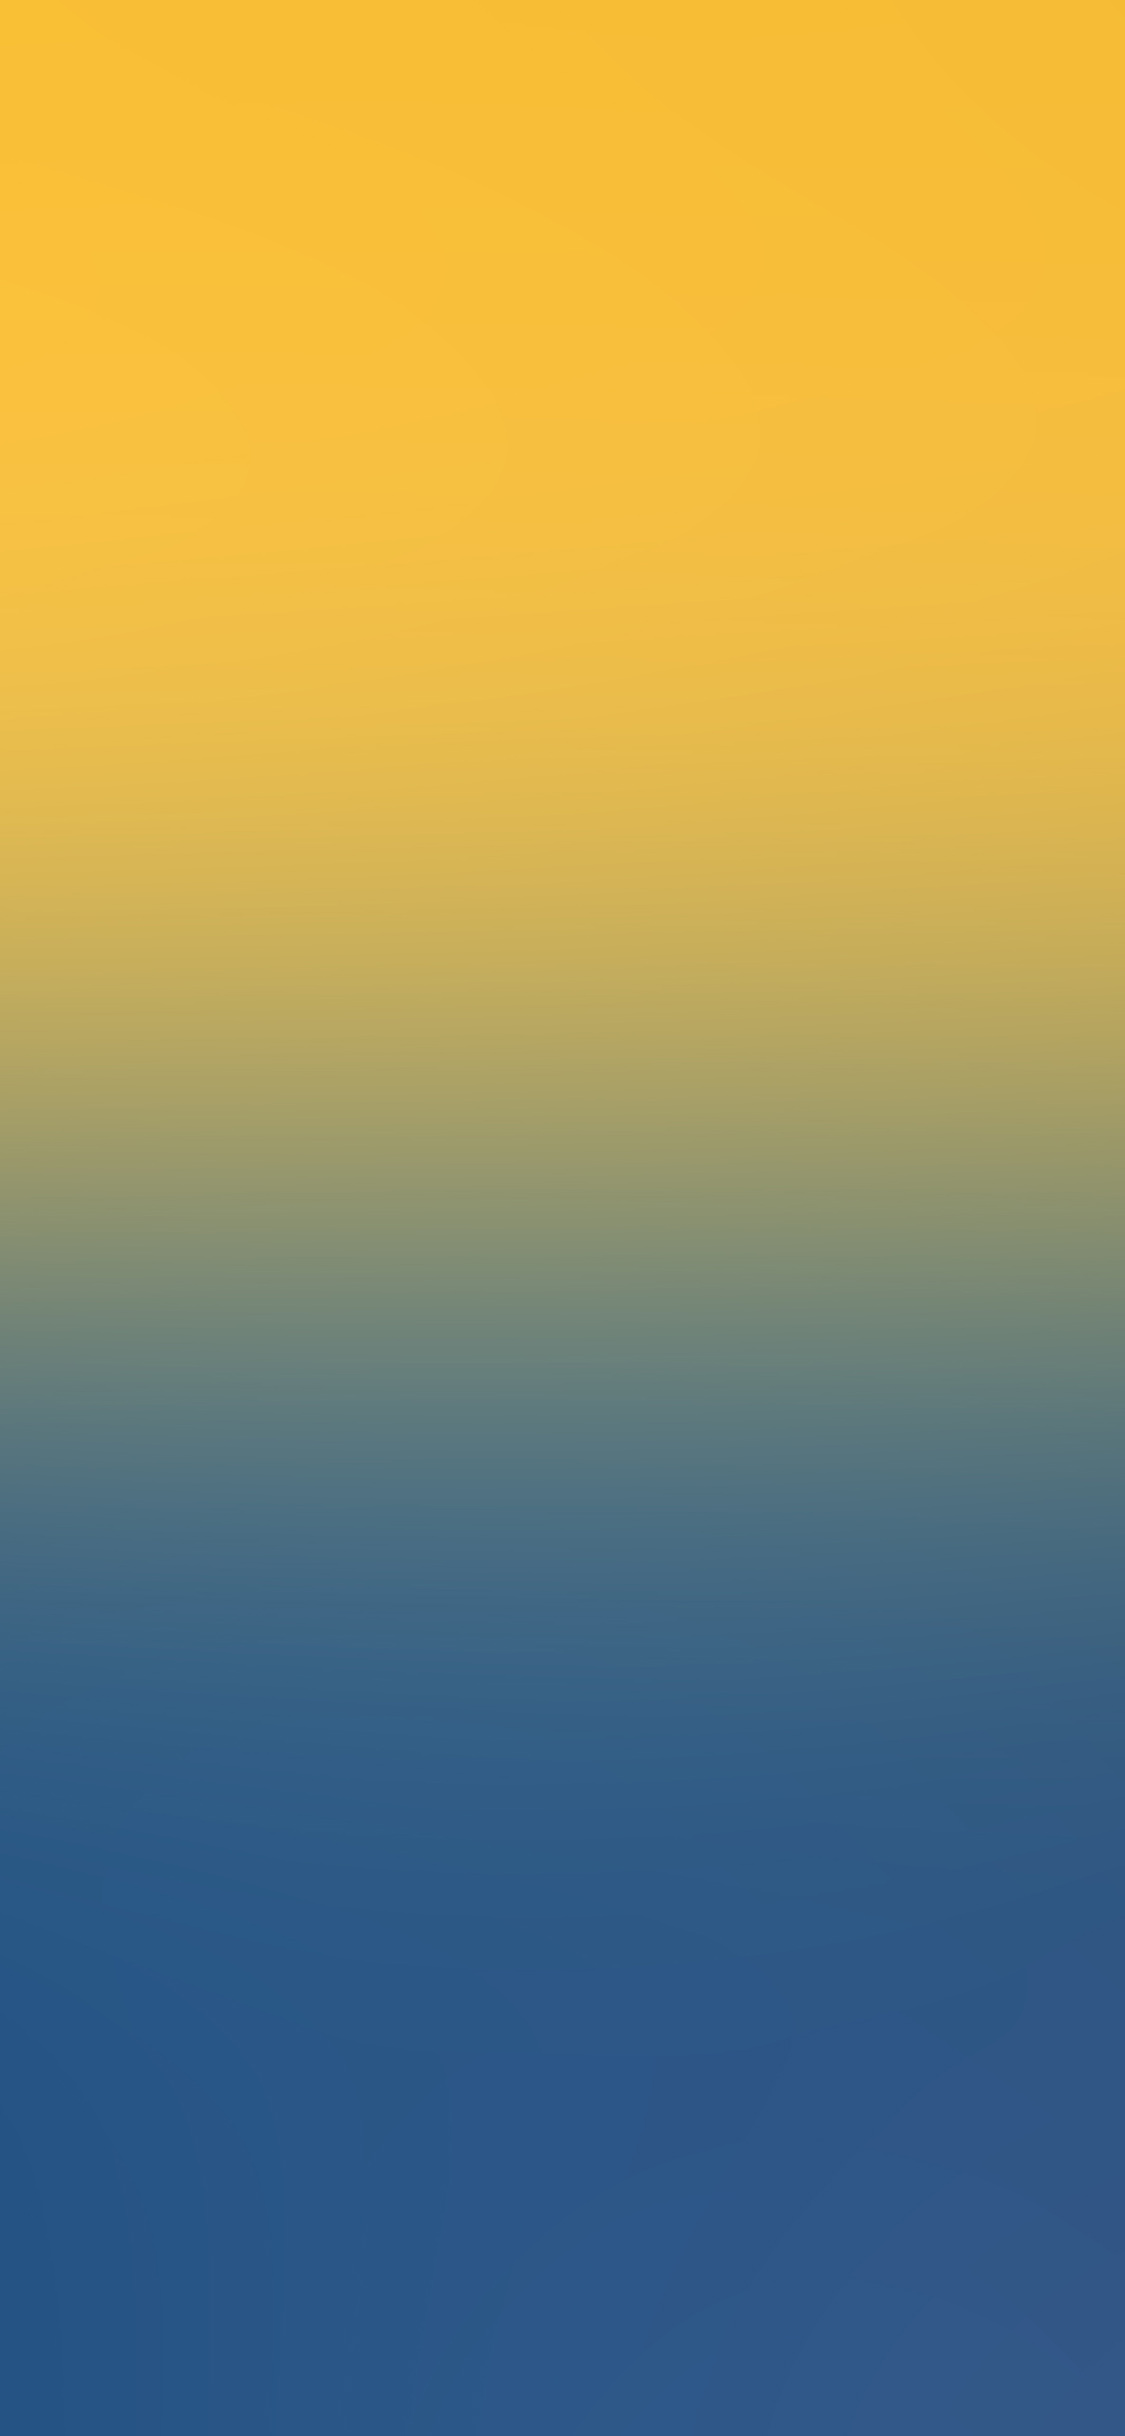 iPhoneXpapers.com-Apple-iPhone-wallpaper-si41-spring-yellow-blue-gradation-blur